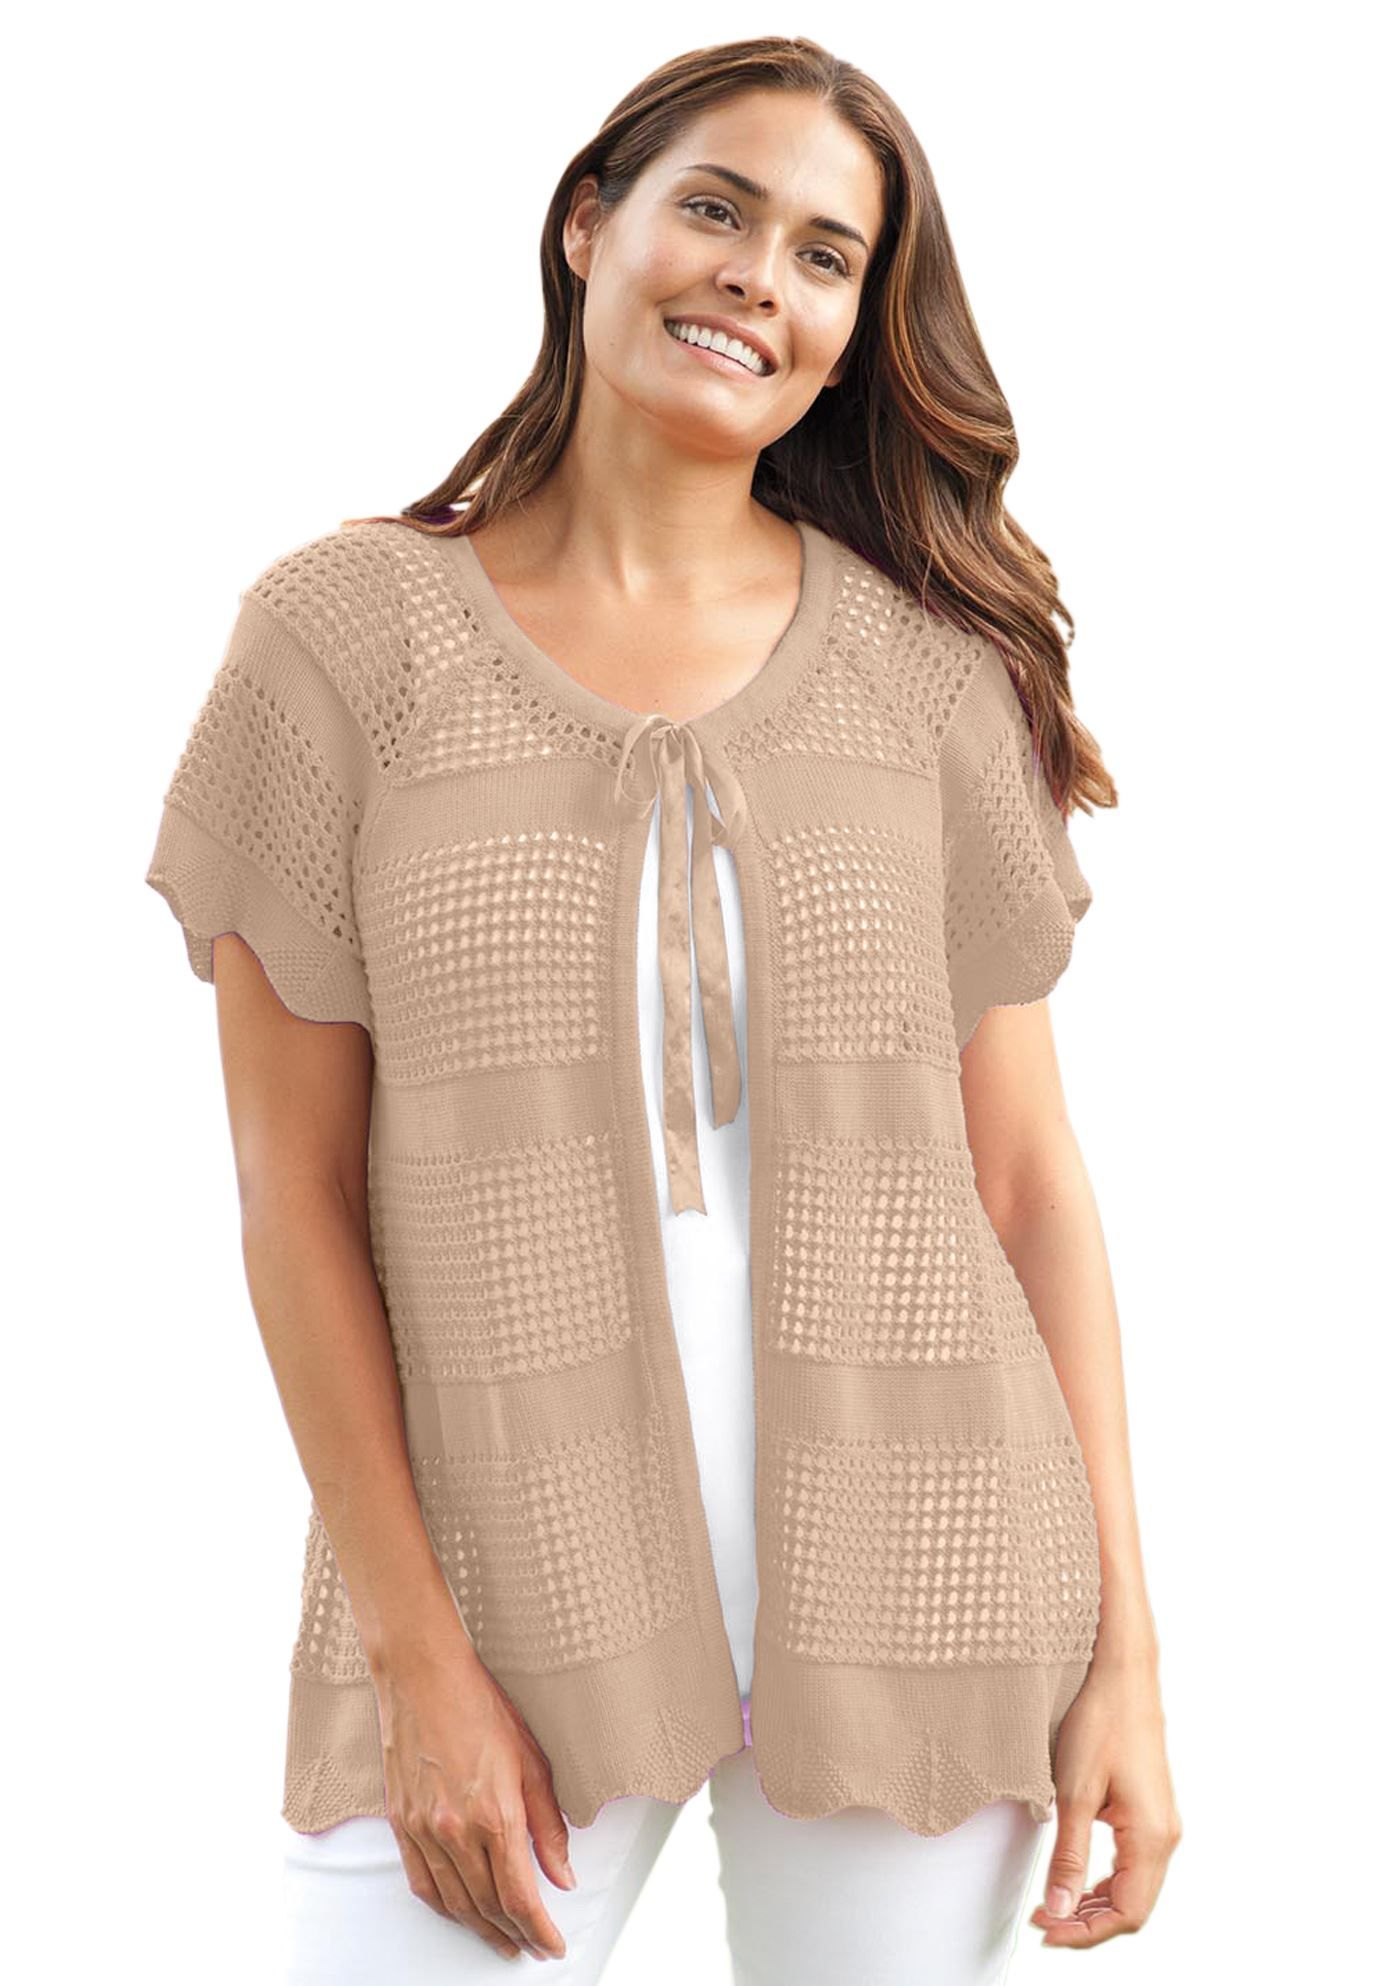 Plus Size Short sleeve crochet knit cardigan | Women within ...